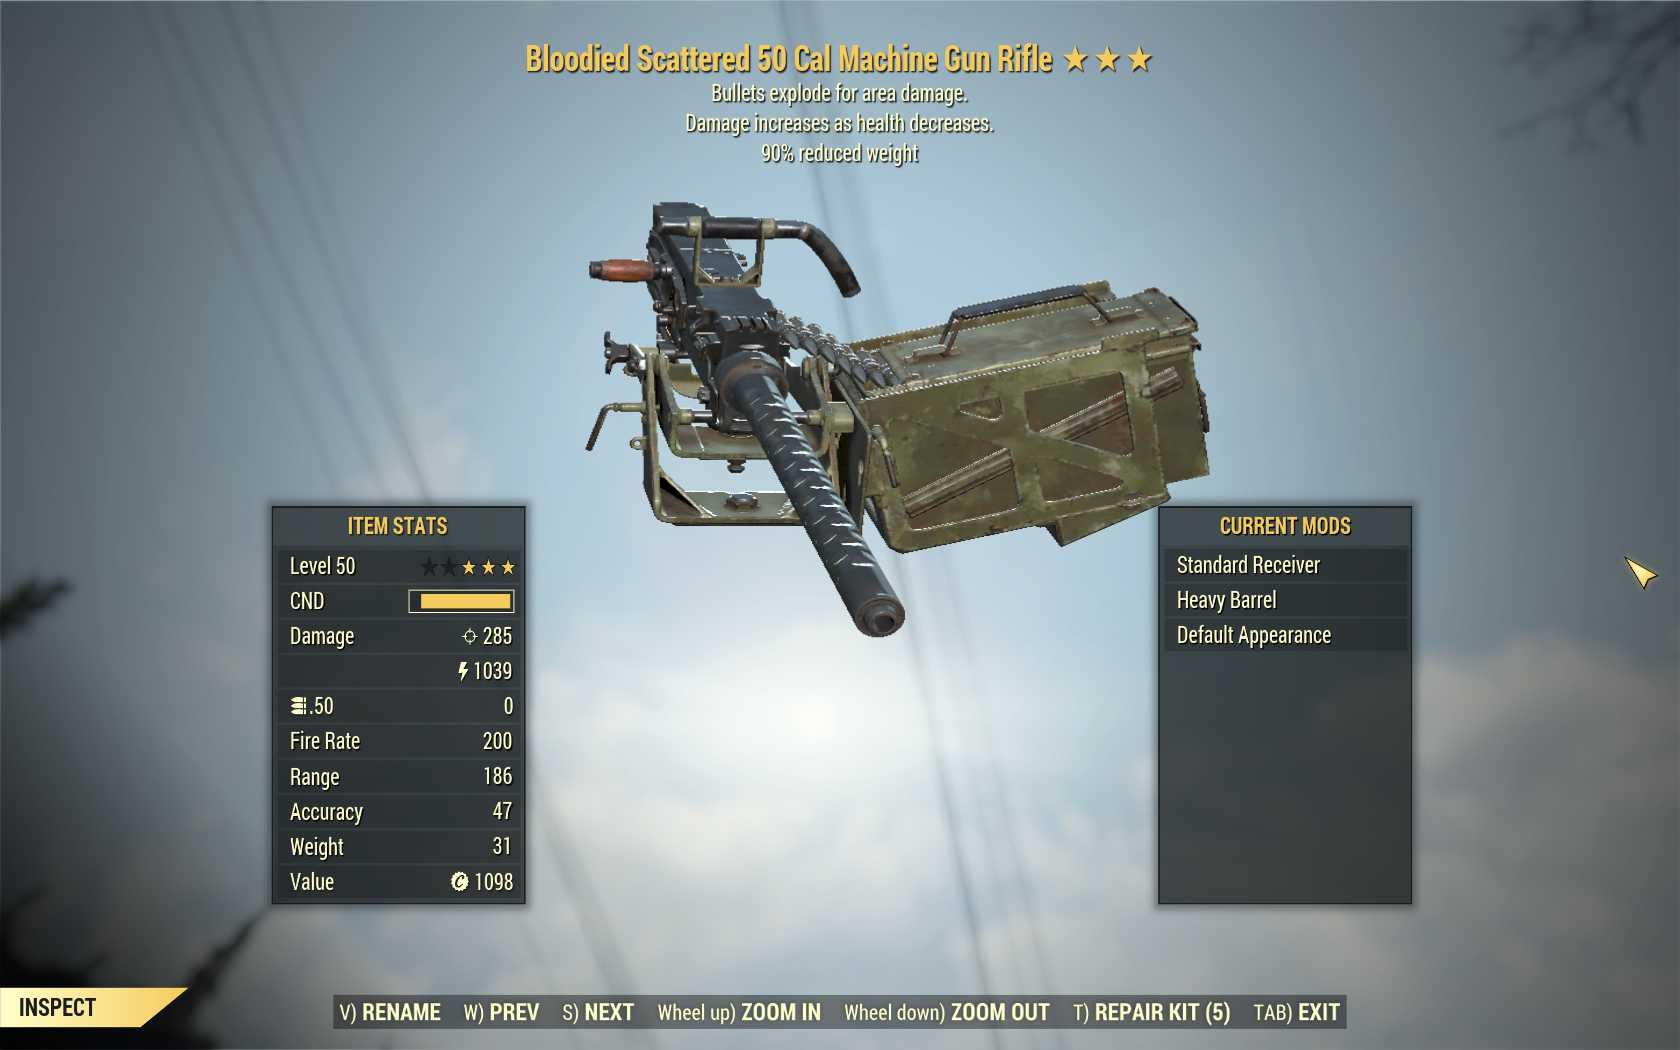 [Glitched weapon, Insane Damage] Bloodied Explosive 50 Cal Machine Gun (90% reduced weight)